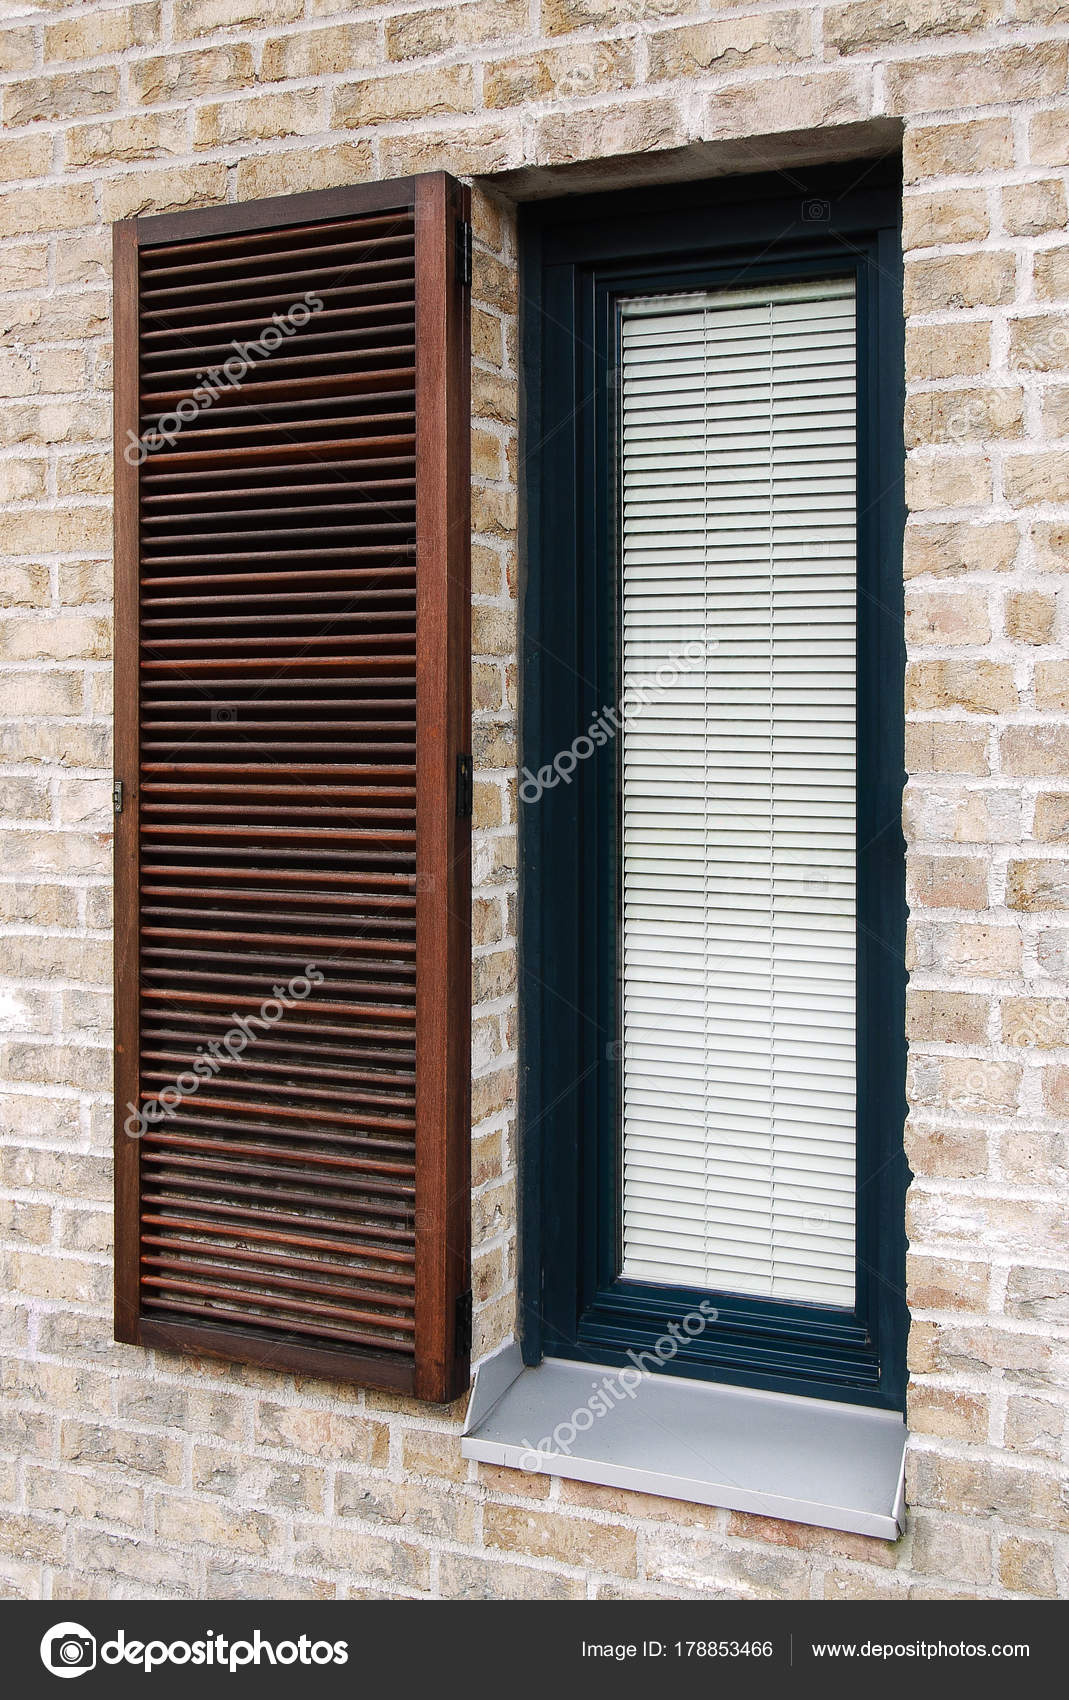 Blinds In Modern Window, Detail On Modern Brick Facade With Wooden Window  With Shading Elements, Contemporary Narrow Window With Metal Parapet U2014  Photo By ...